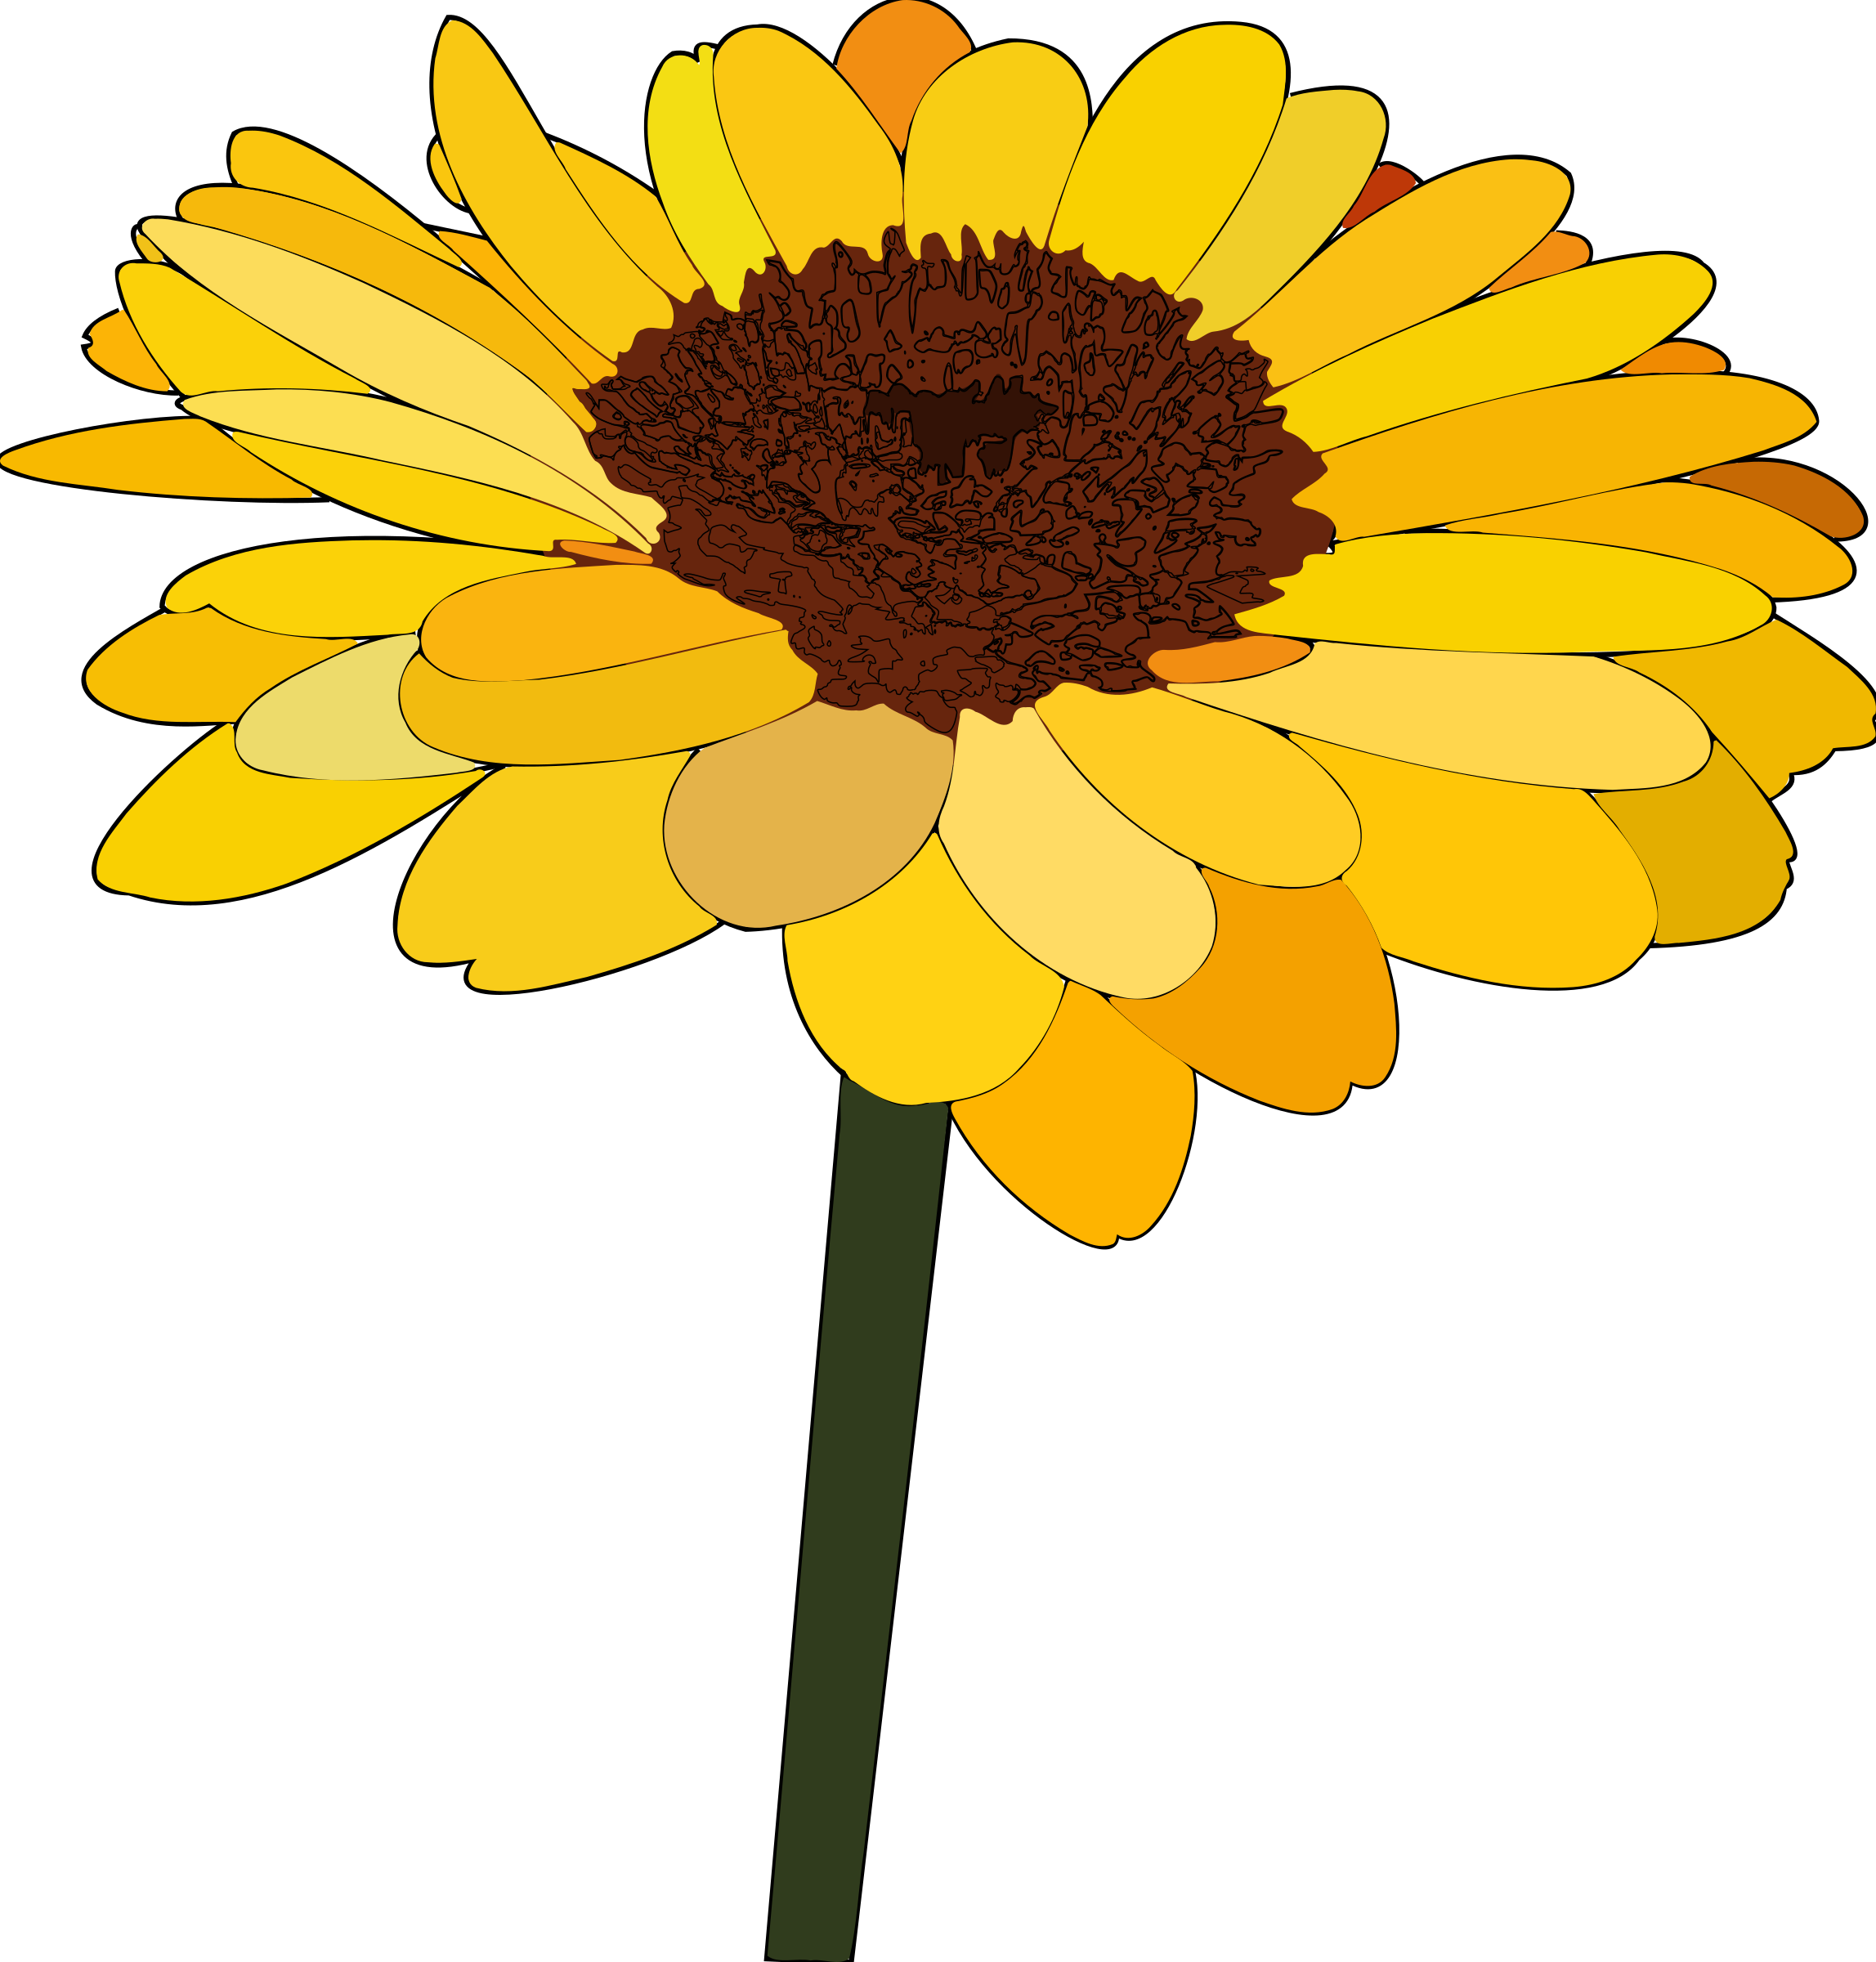 sunflower by tom